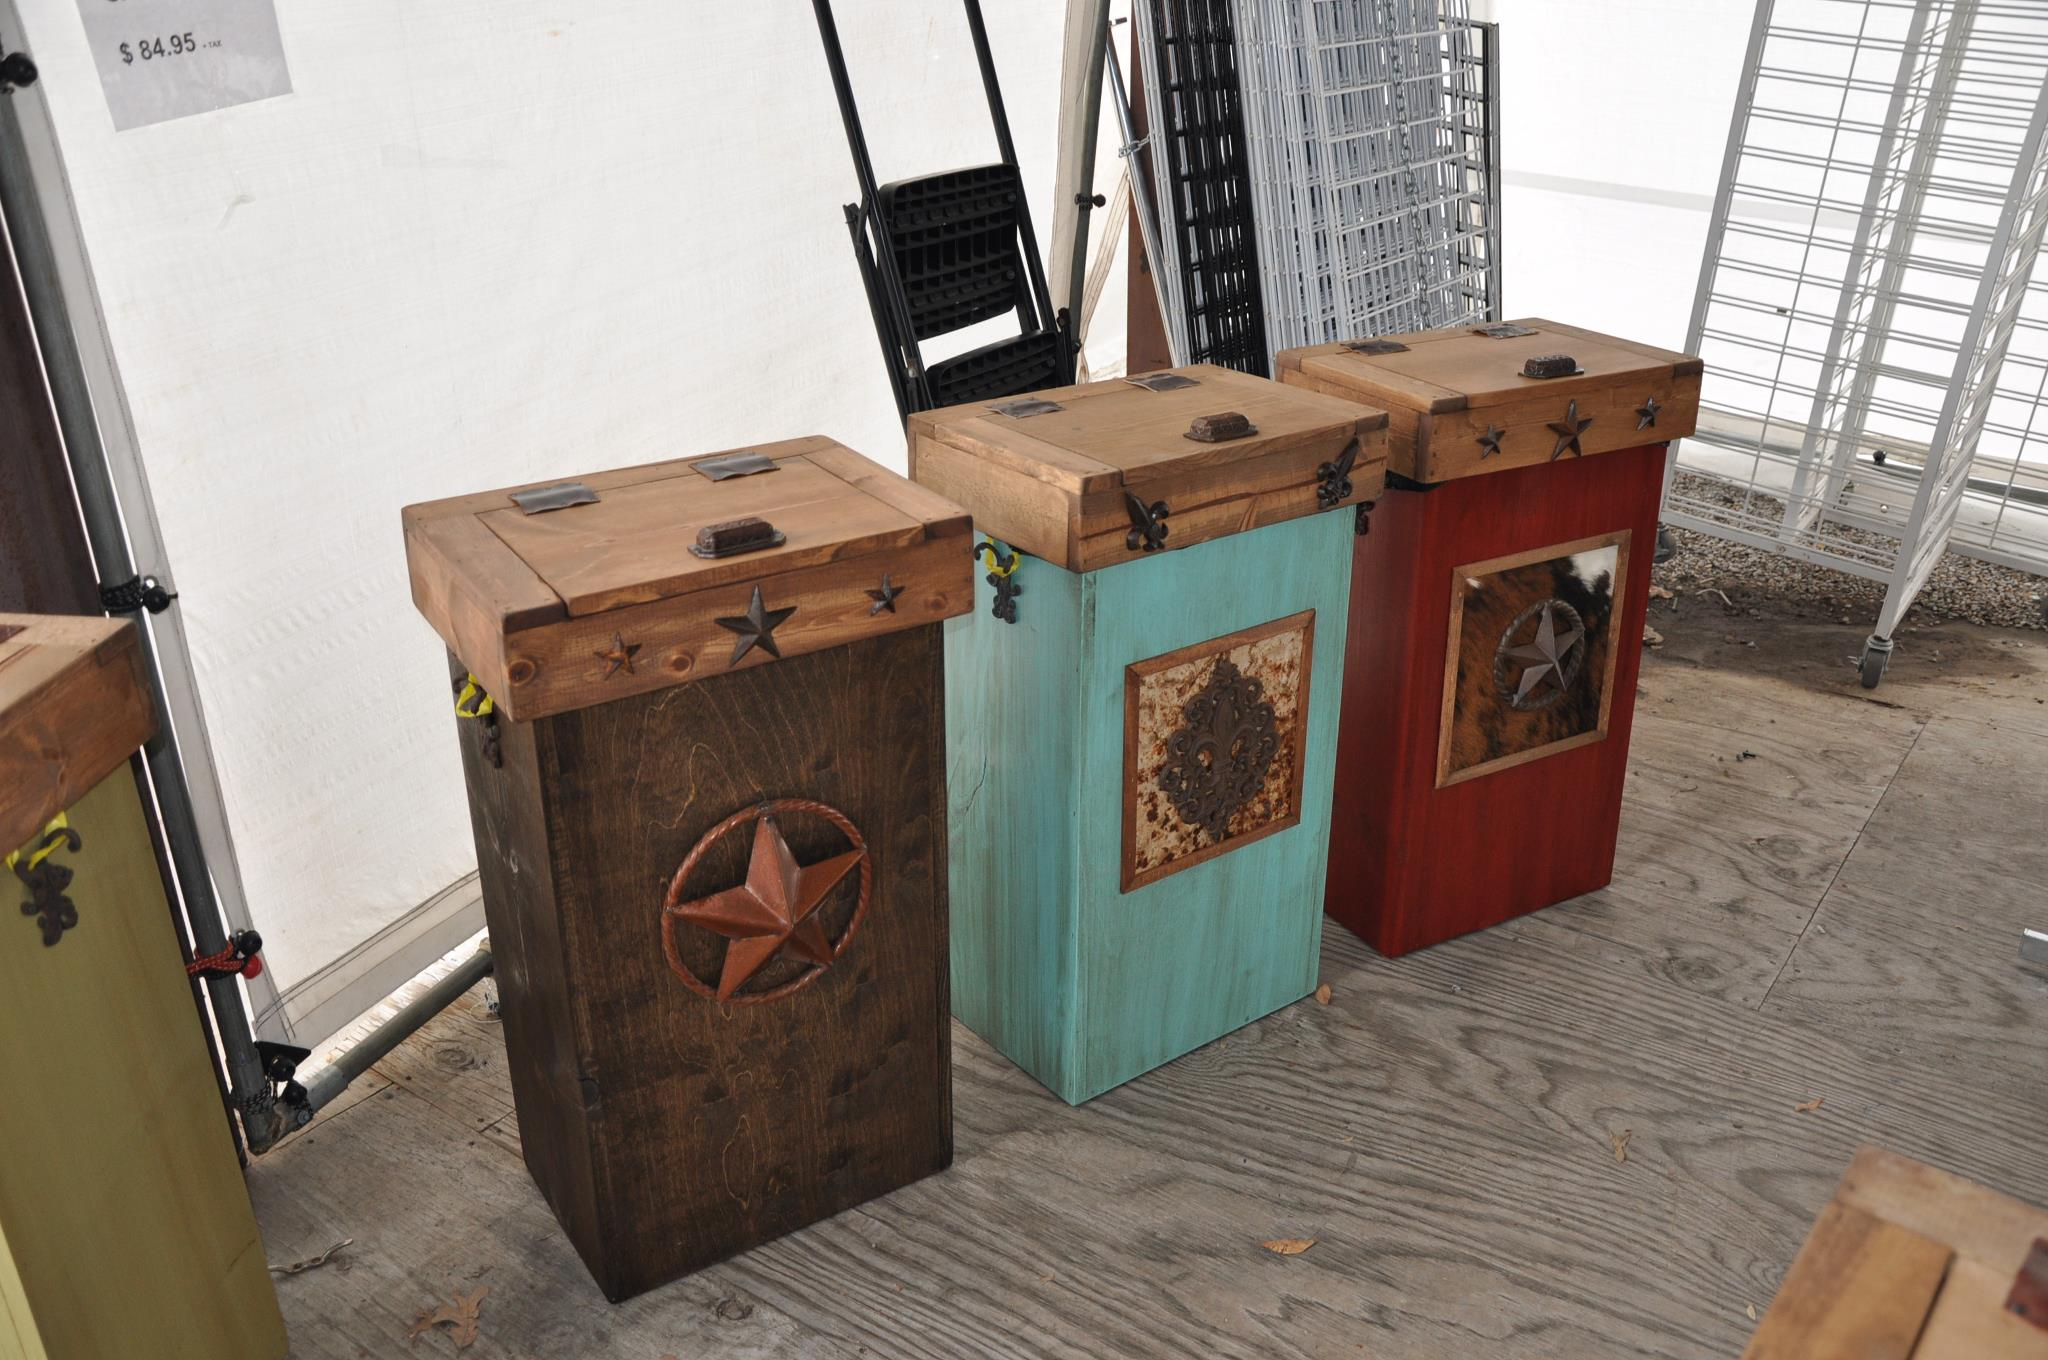 Laundry Trash Cans Hi End Rustic Trash Cans Laundry Bins